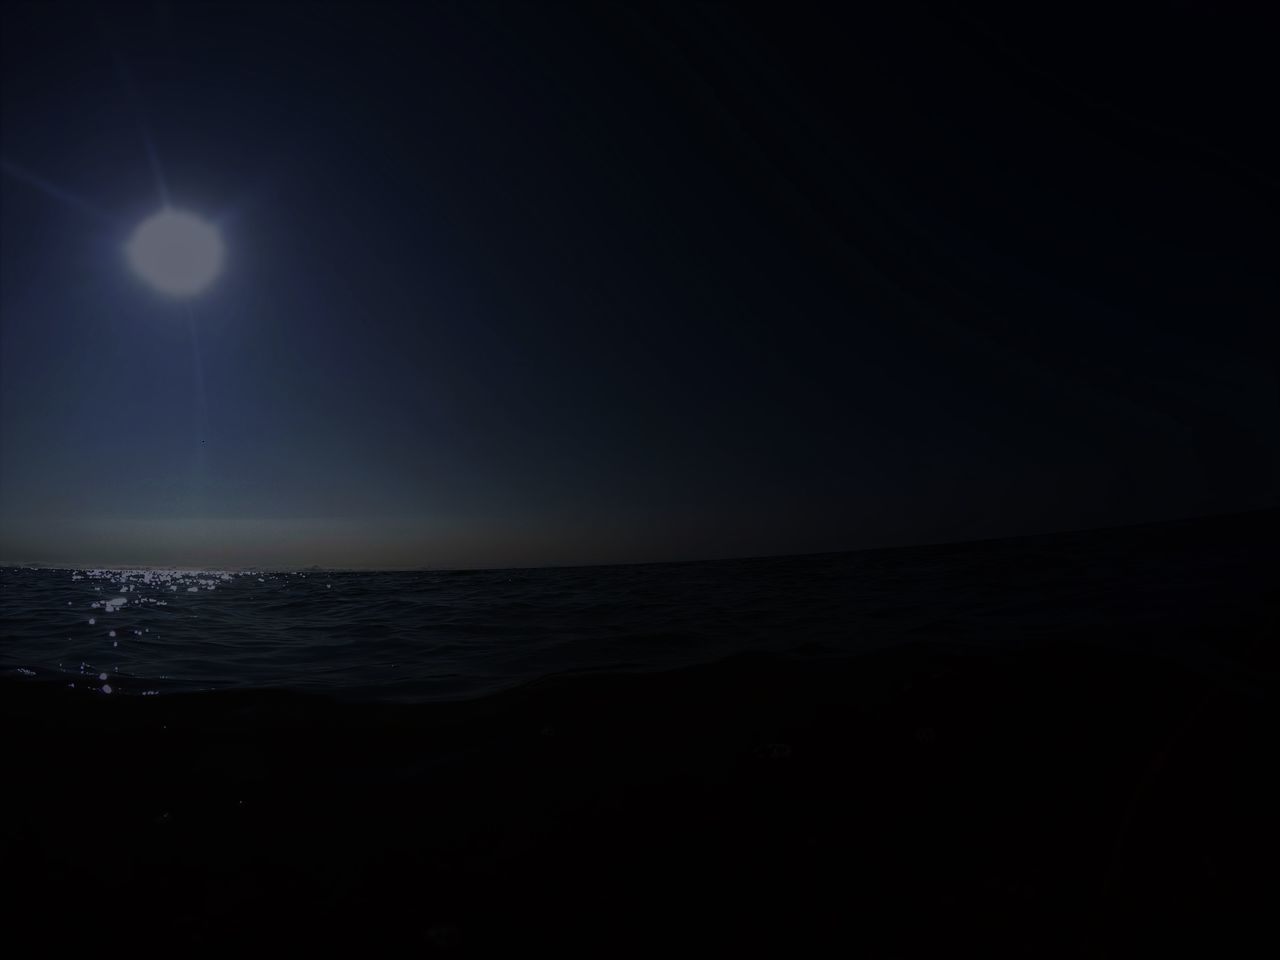 sea, tranquil scene, scenics, tranquility, beauty in nature, nature, horizon over water, water, moon, idyllic, silhouette, night, beach, outdoors, sky, moonlight, no people, clear sky, astronomy